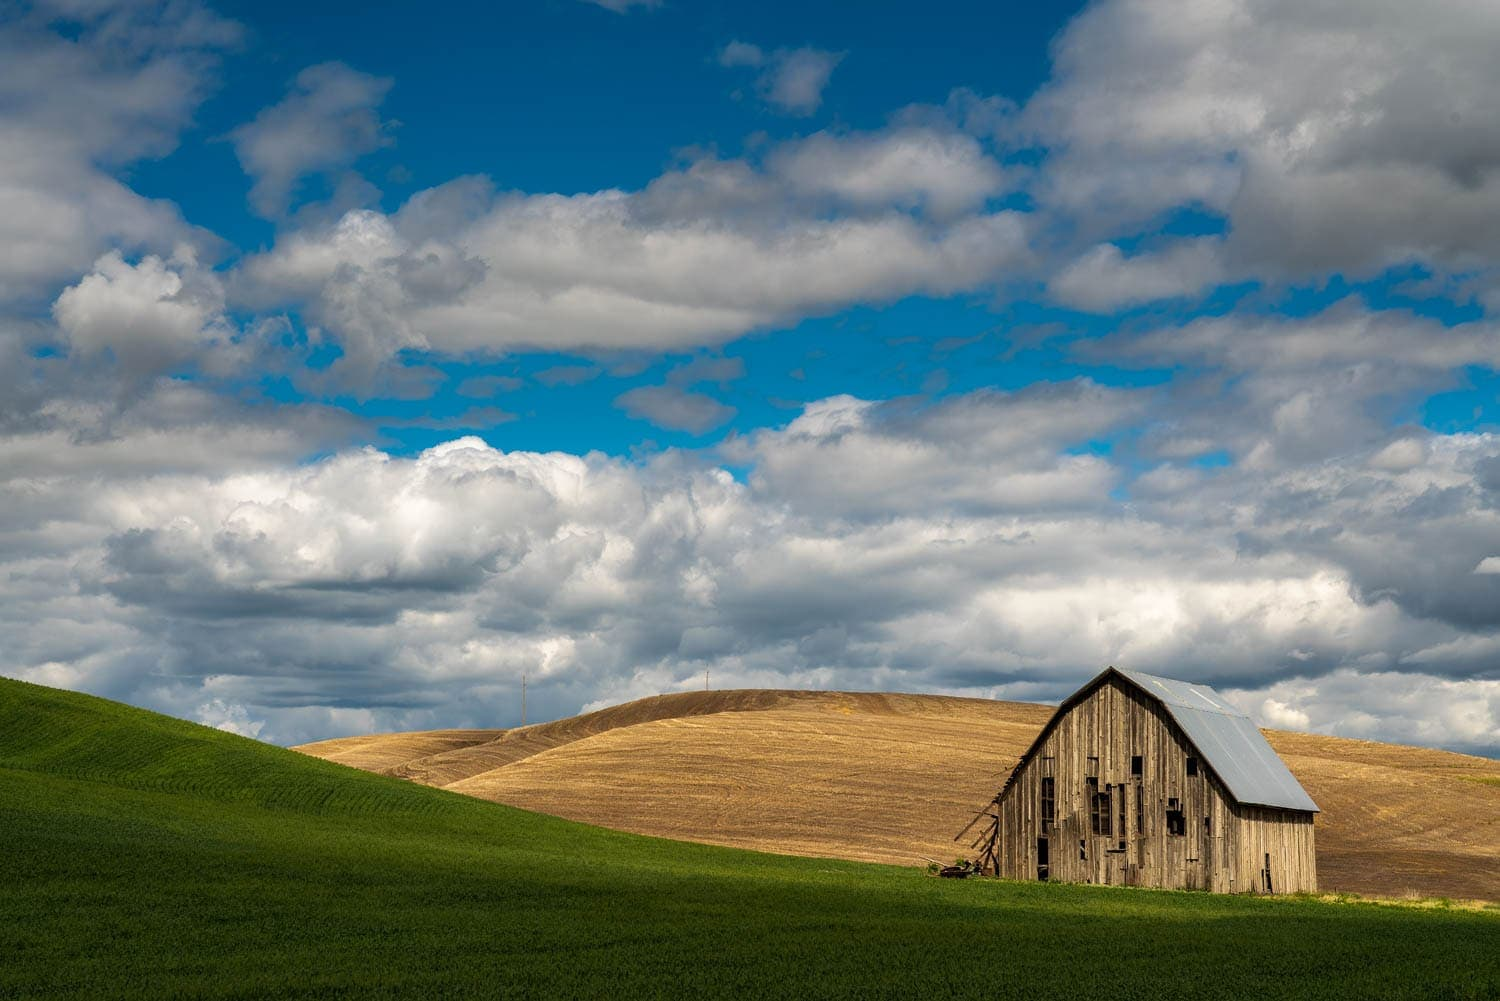 Abandoned wood barn in green field under puffy clouds